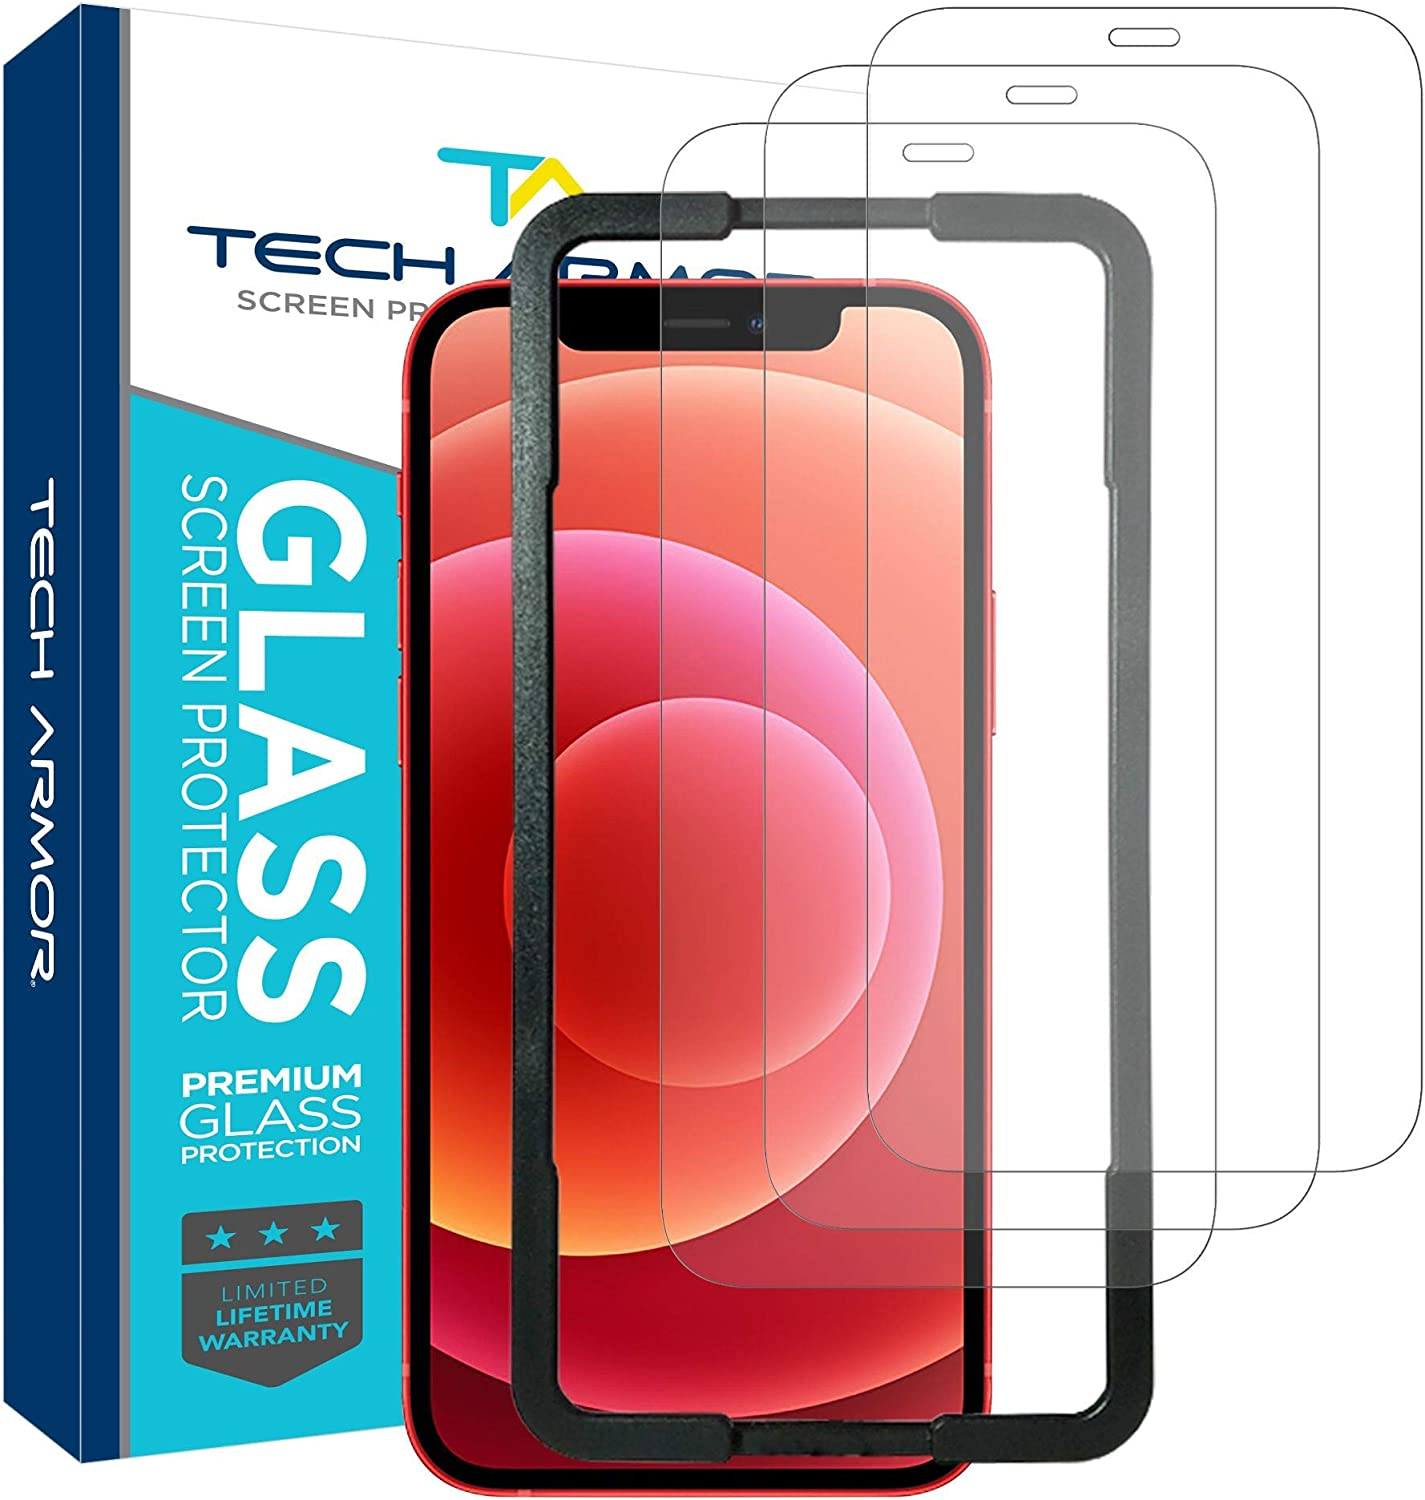 """Tech Armor Ballistic Glass Screen Protector for Apple NEW iPhone 12 mini (5.4"""") - Case-Friendly Tempered Glass [3-Pack], Haptic Touch Accurate Designed for iPhone 12 5.4-inch"""